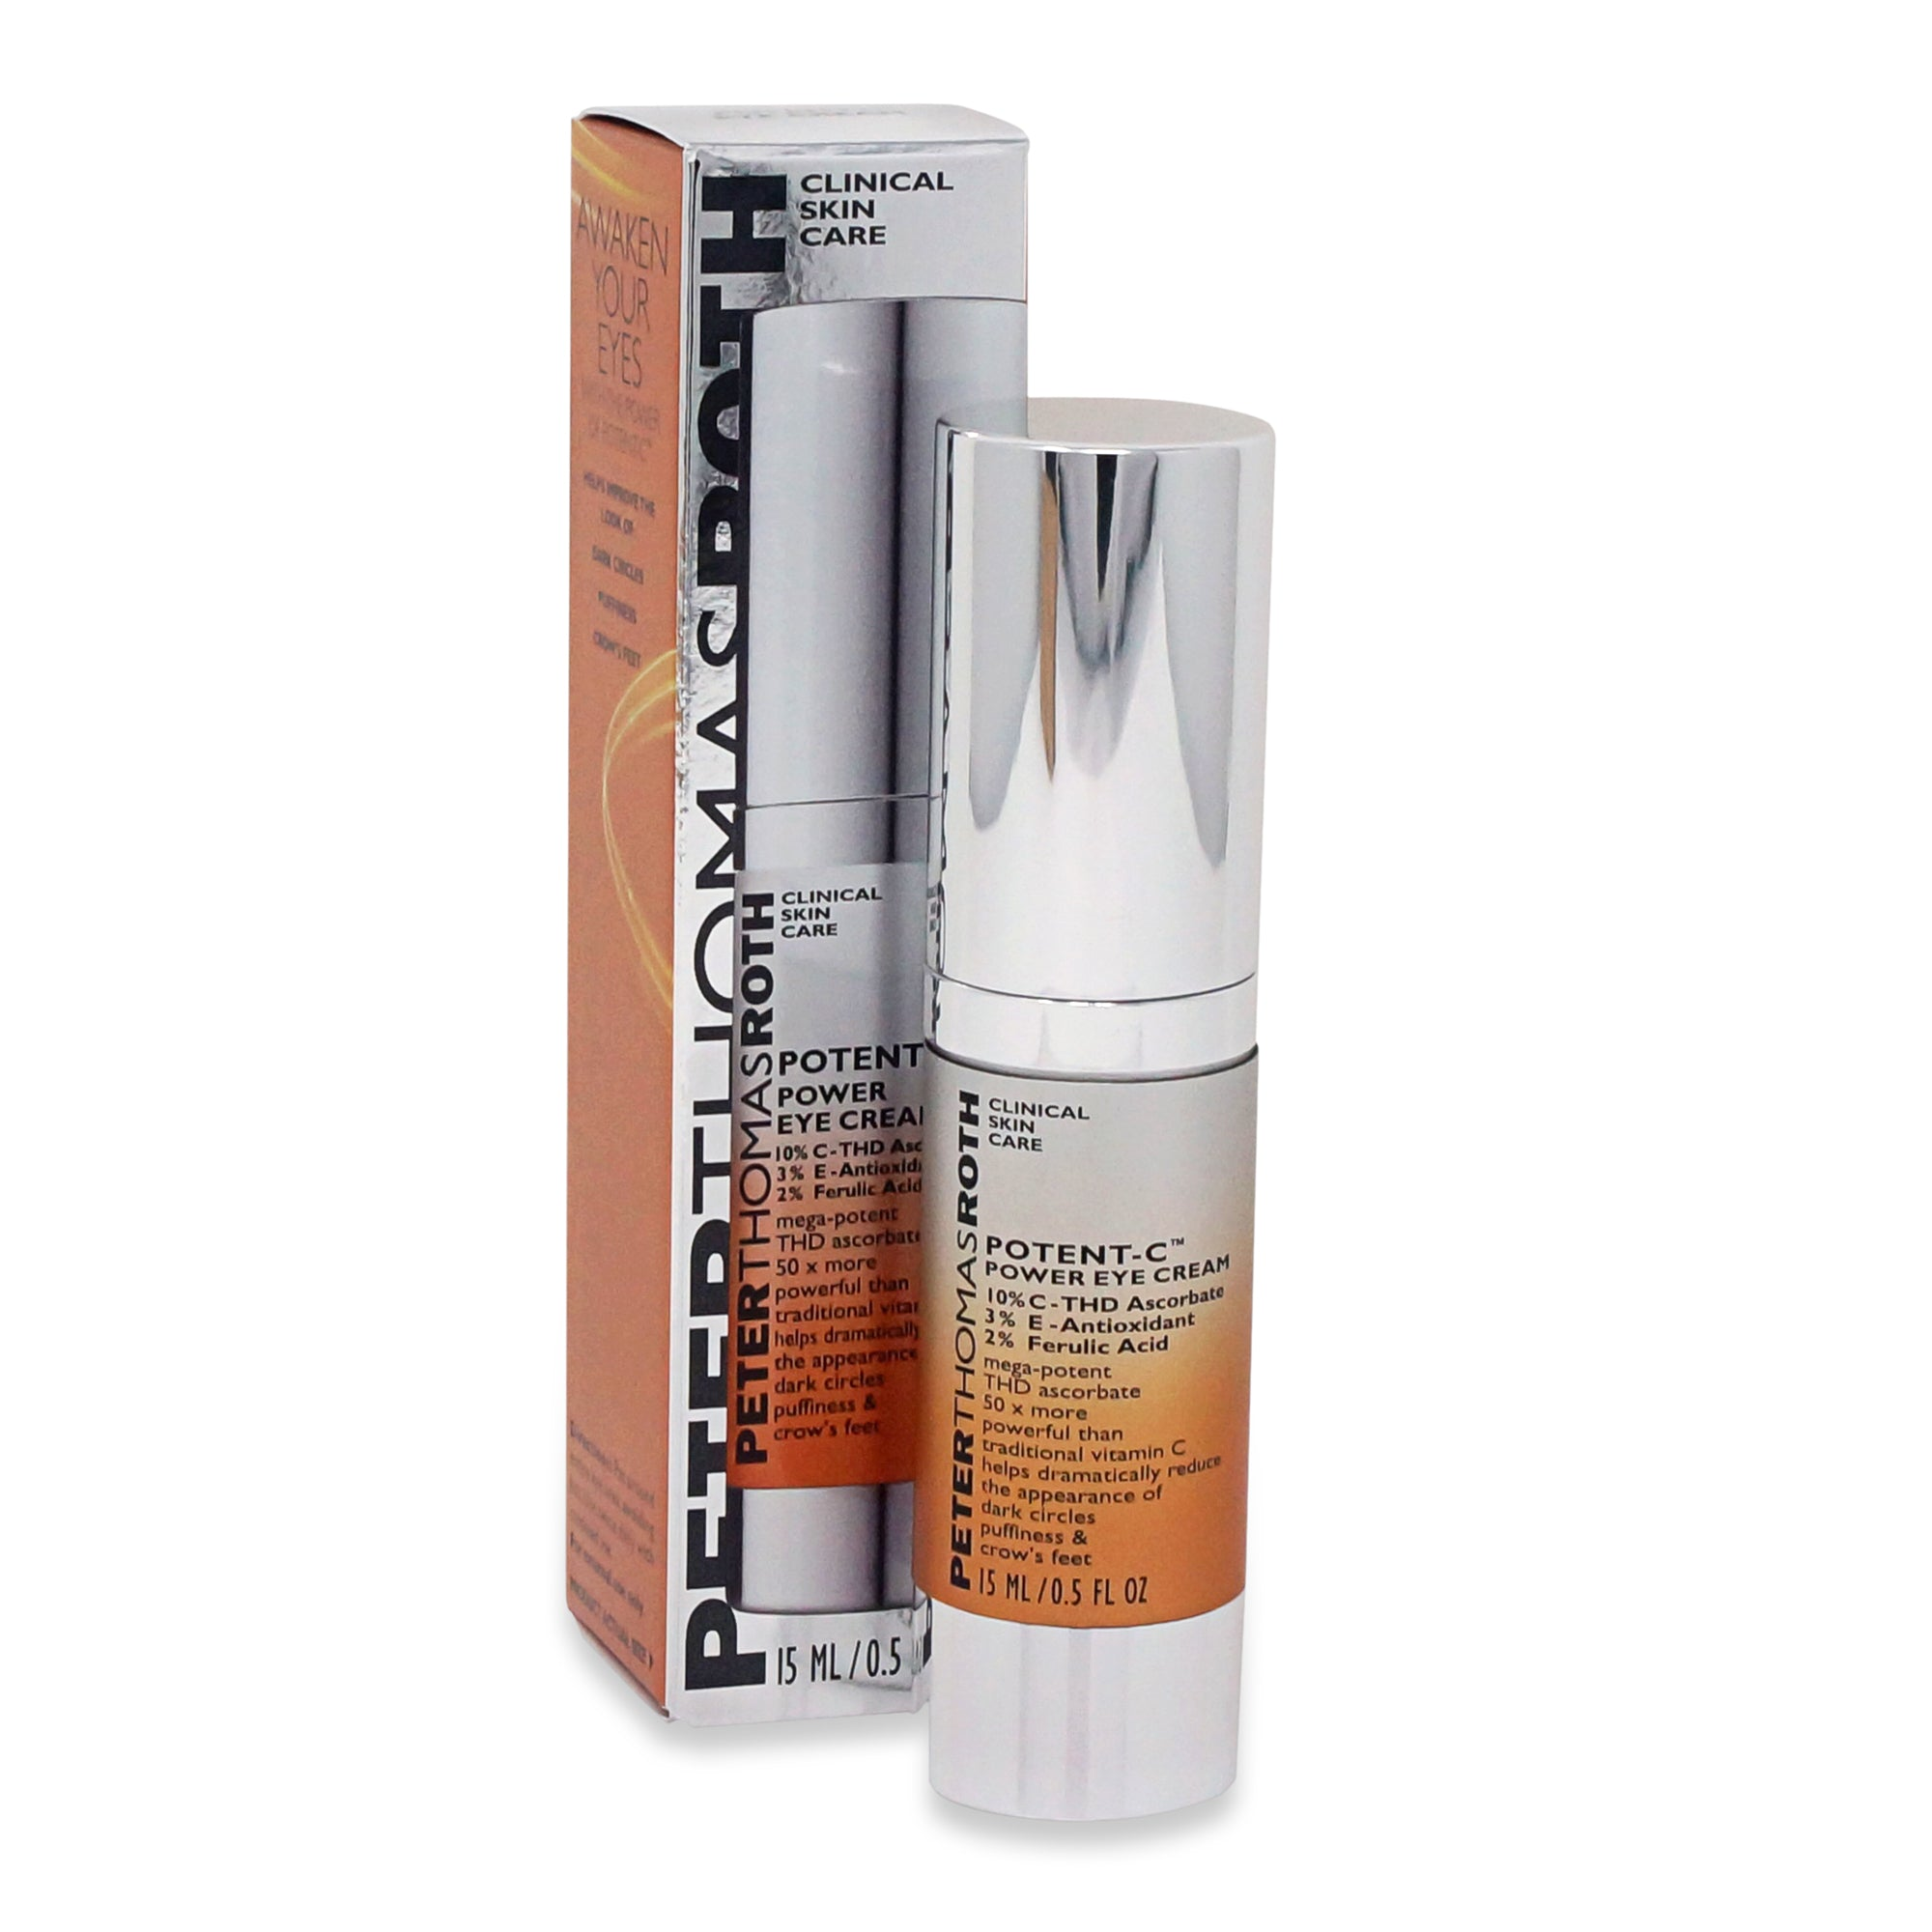 PETER THOMAS ROTH ~ POTENT C POWER EYE CREAM ~ 0.5 OZ